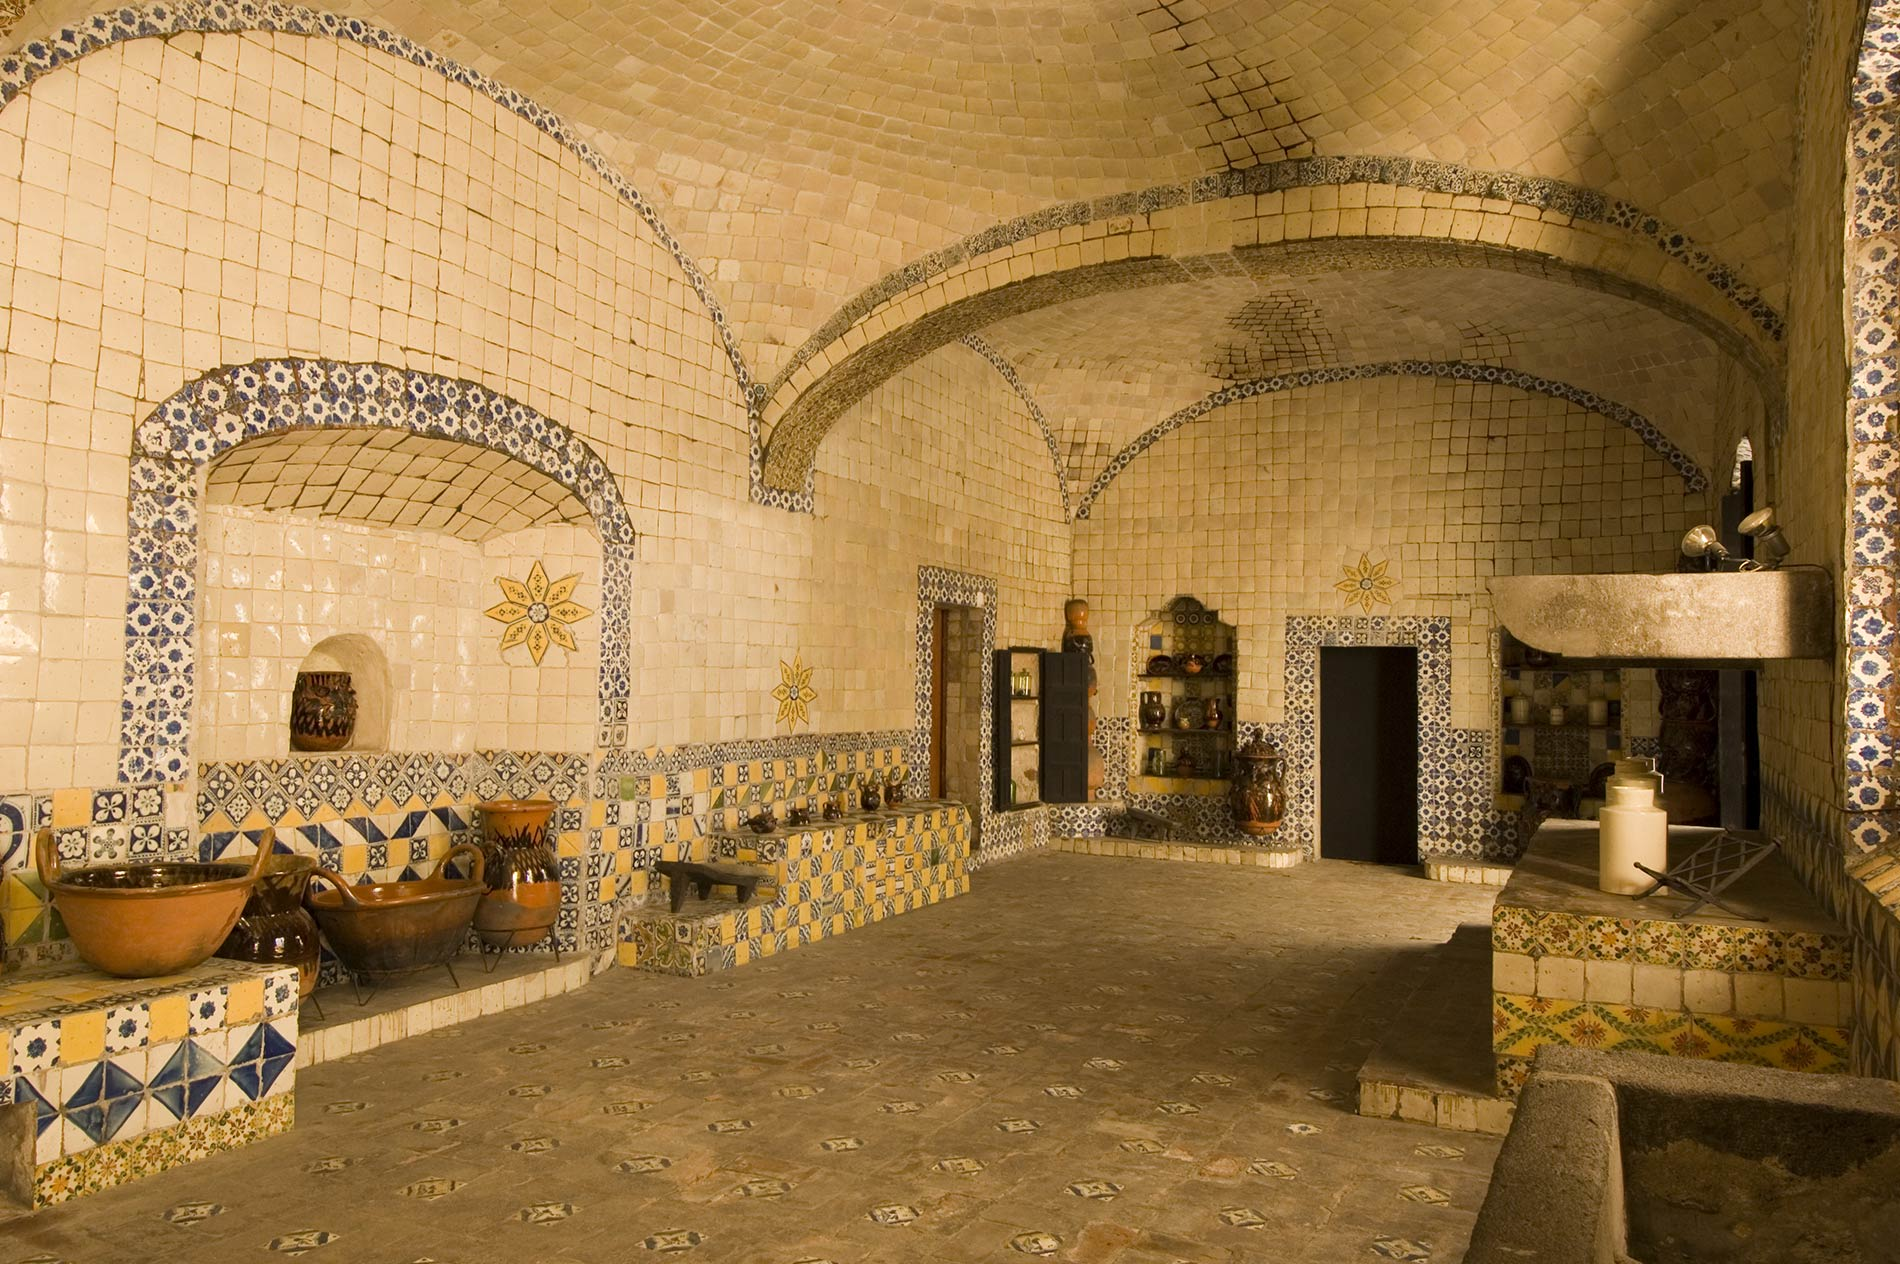 Kitchen of the Convent of Santa Rosa